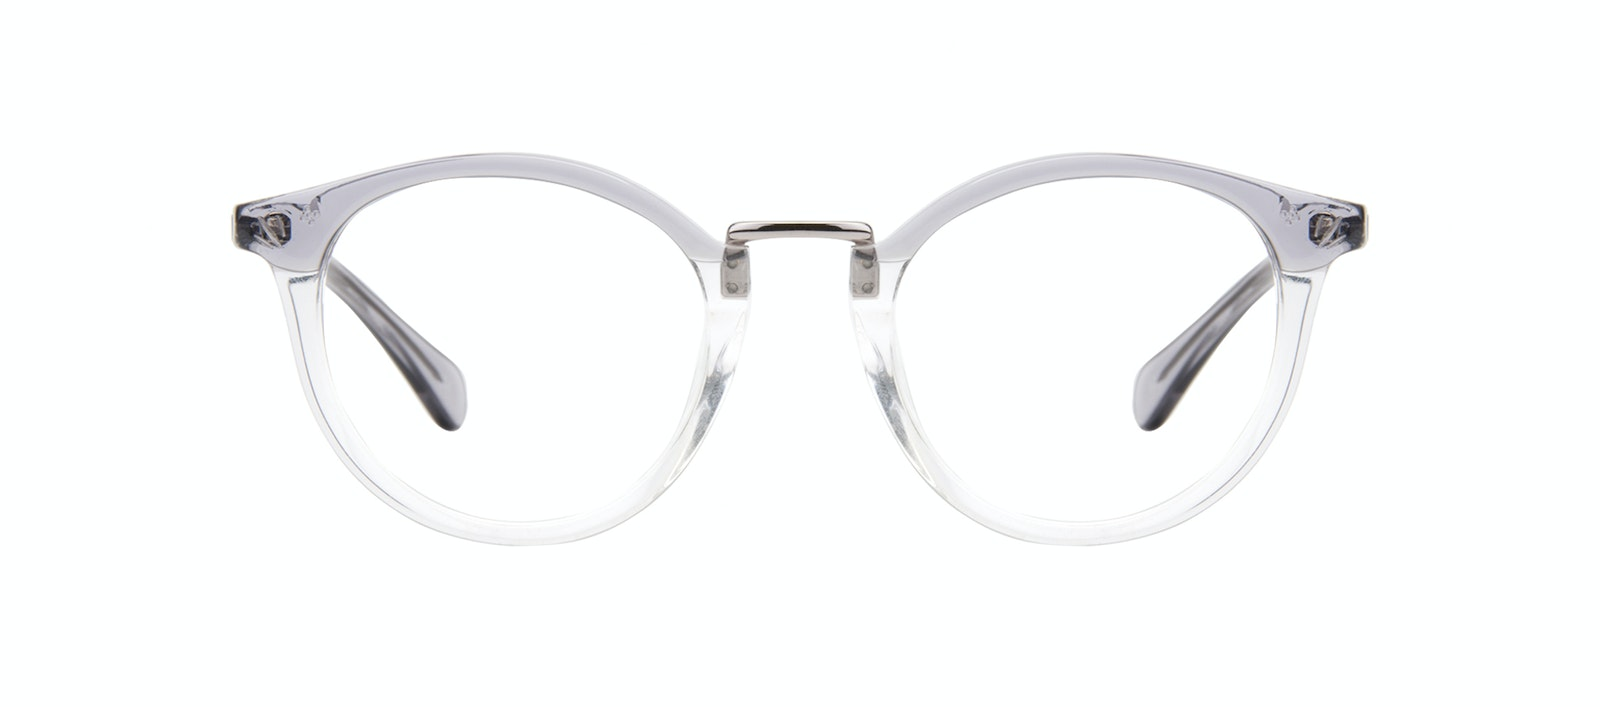 Affordable Fashion Glasses Round Eyeglasses Women Self Grey Front